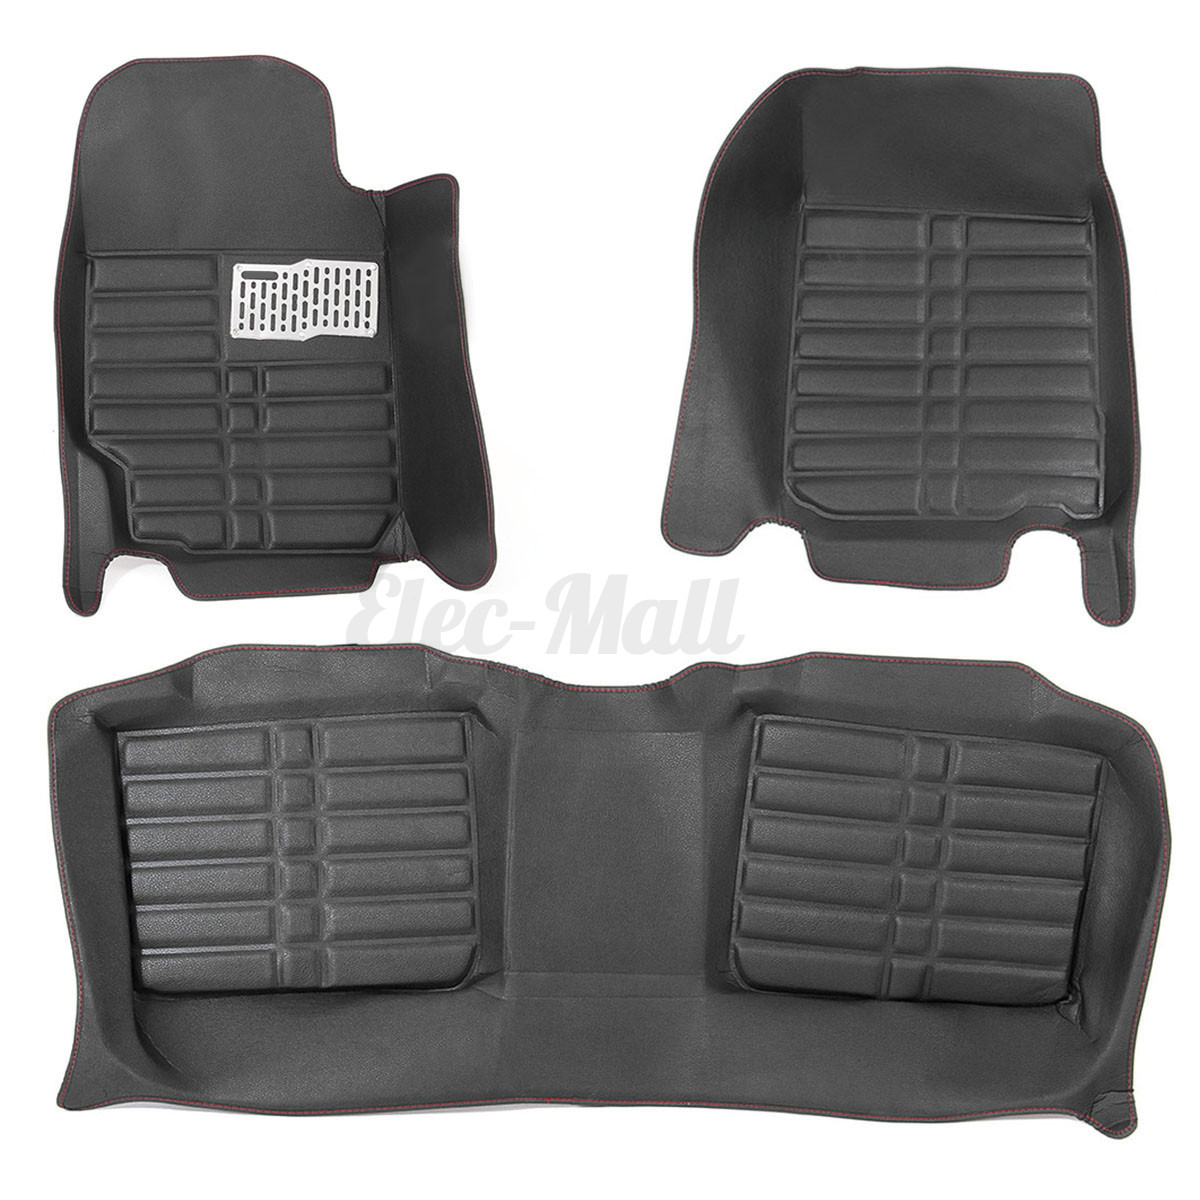 Car Floor Leather Front Amp Rear Liner Waterproof Mat For Toyota Camry 2012 2016 Ebay